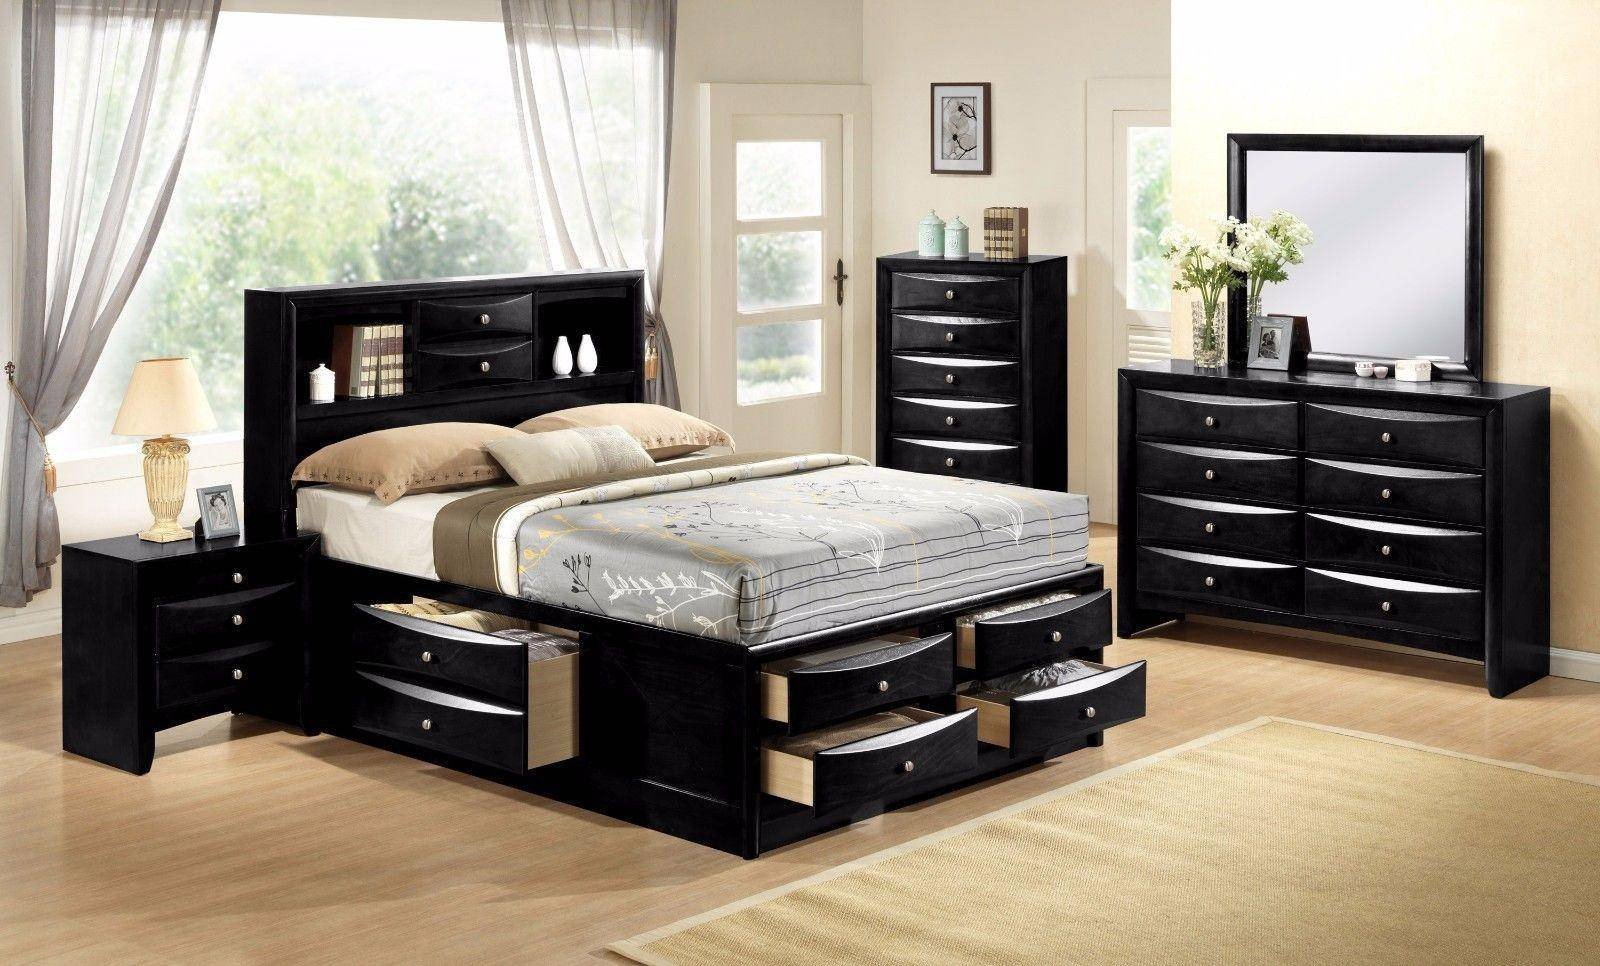 Black King Bedroom Set Awesome Crown Mark B4285 Emily Modern Black Finish Storage King Size